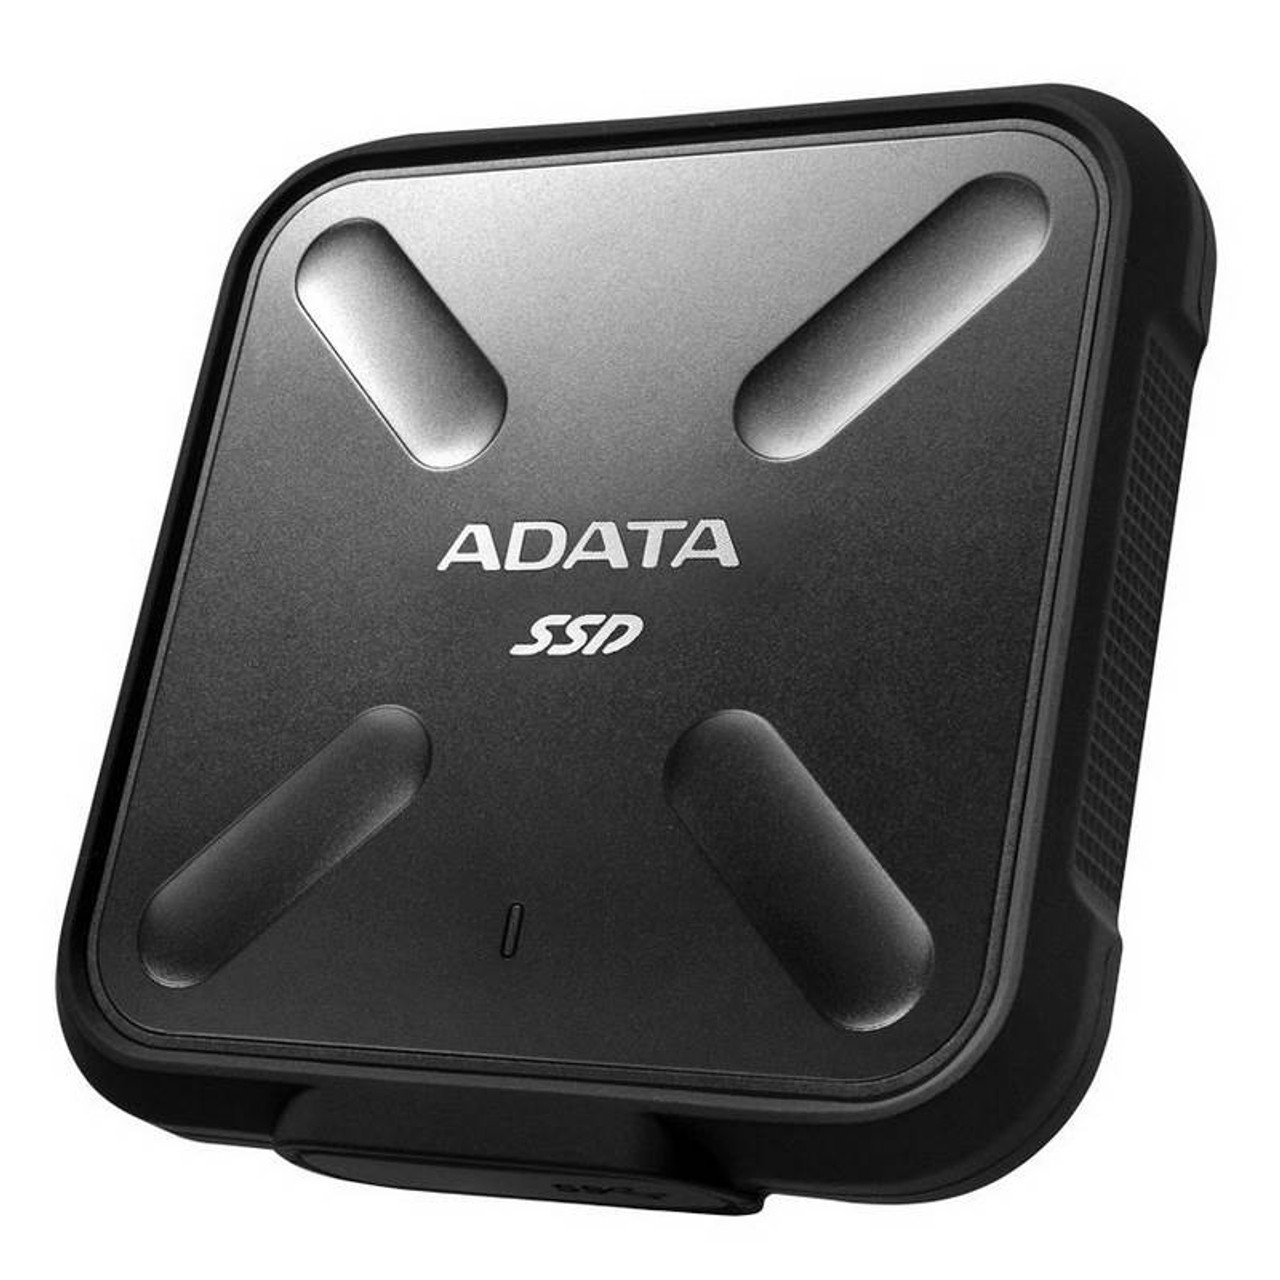 Image for Adata SD700 512GB USB 3.1 Portable External 3D NAND SSD - Black CX Computer Superstore